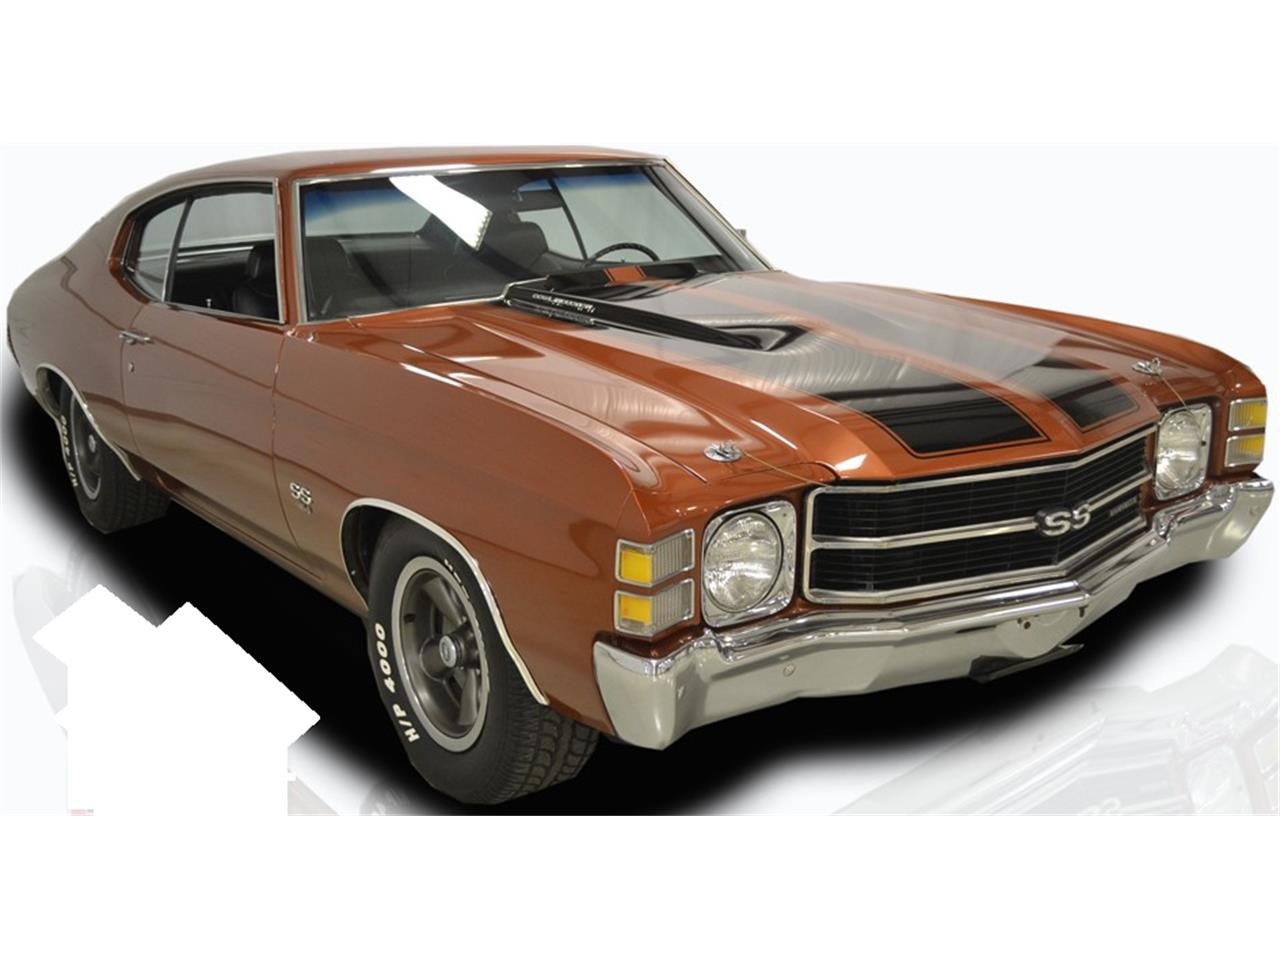 Large Picture of Classic 1971 Chevrolet Chevelle SS located in Texas - $69,995.00 - KMYM